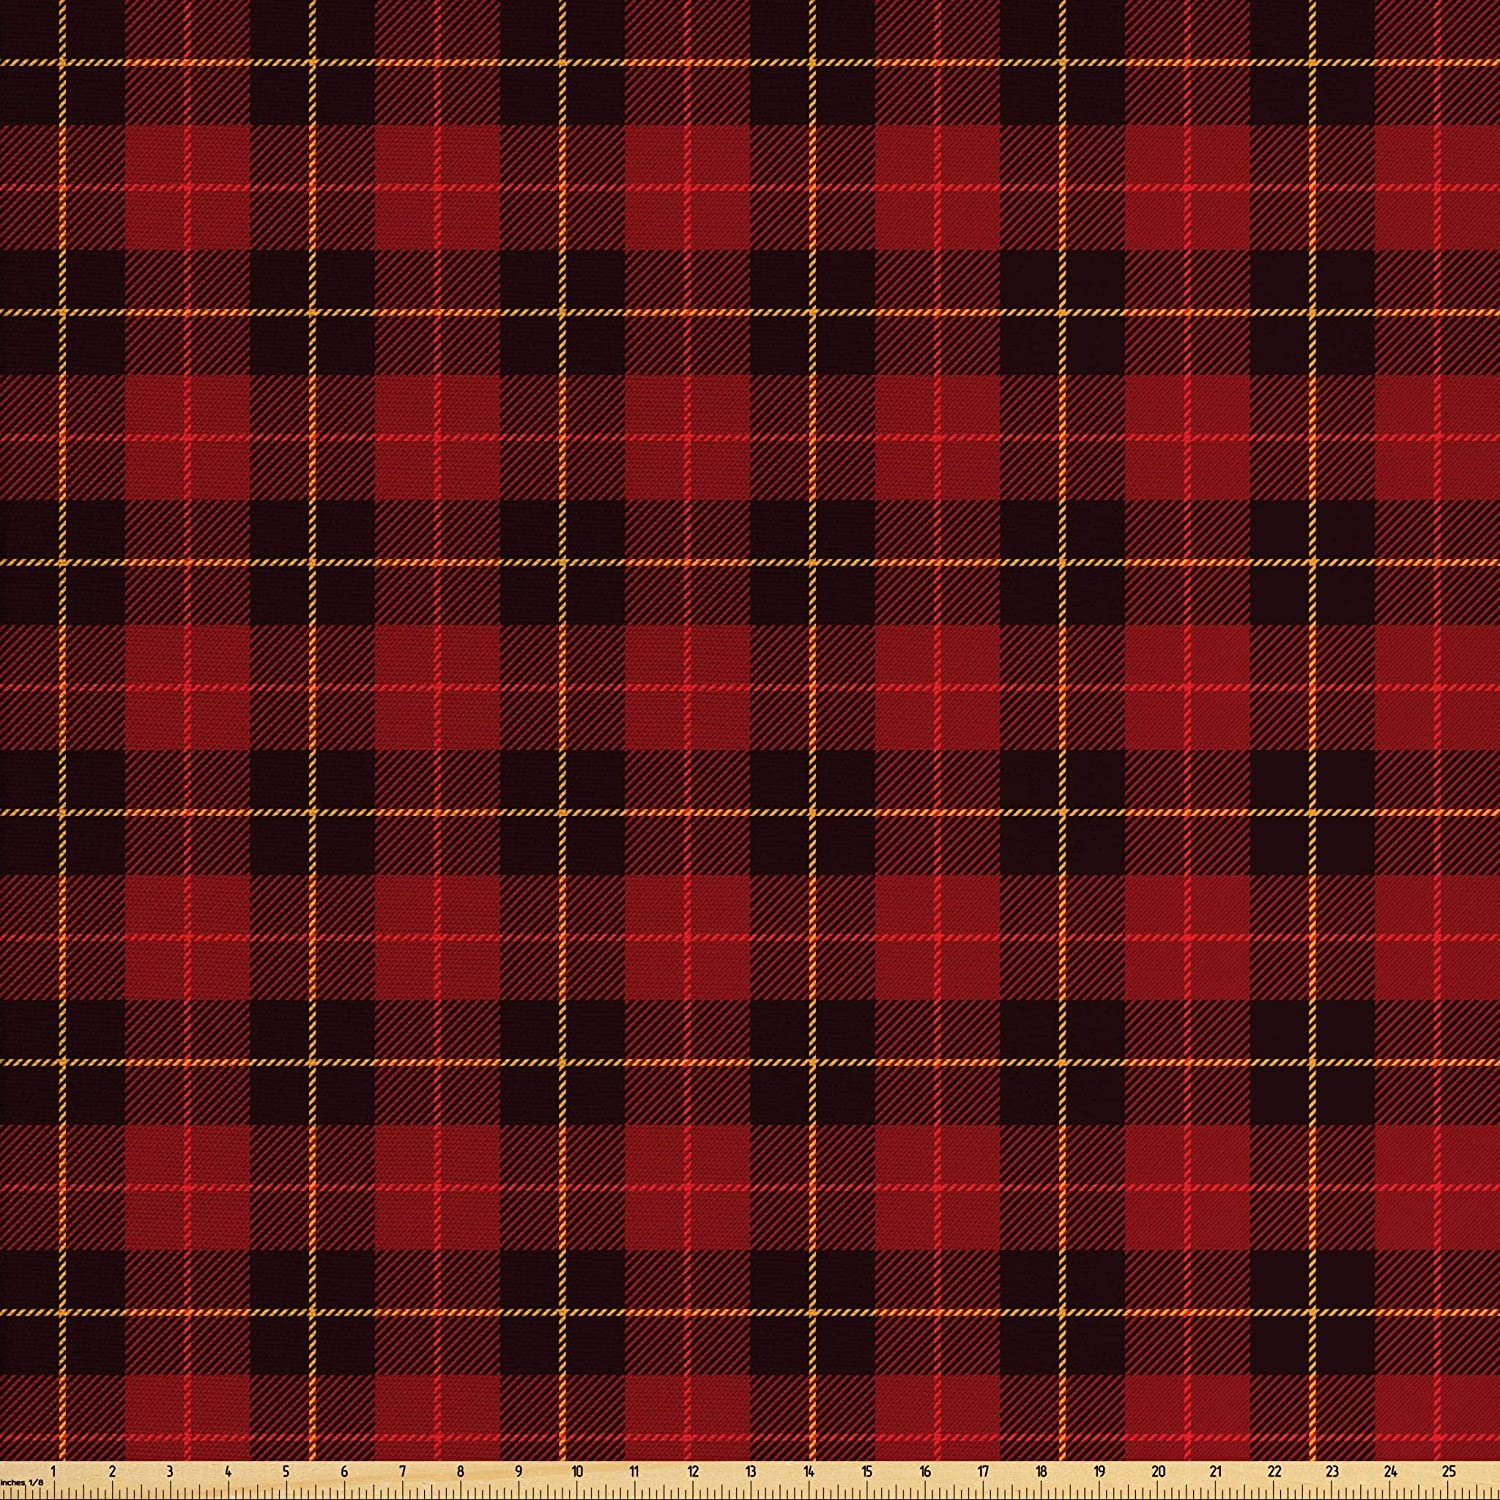 Lunarable Plaid Fabric by The Yard, Scottish Tartan with Traditional Colors Vintage Country Style, Decorative Fabric for Upholstery and Home Accents, 2 Yards, Brown Mustard